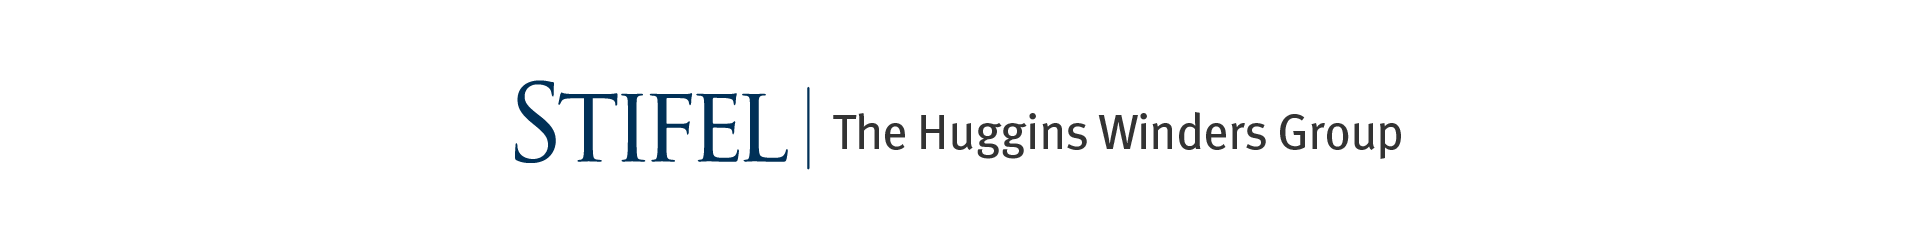 The Huggins Winders Group